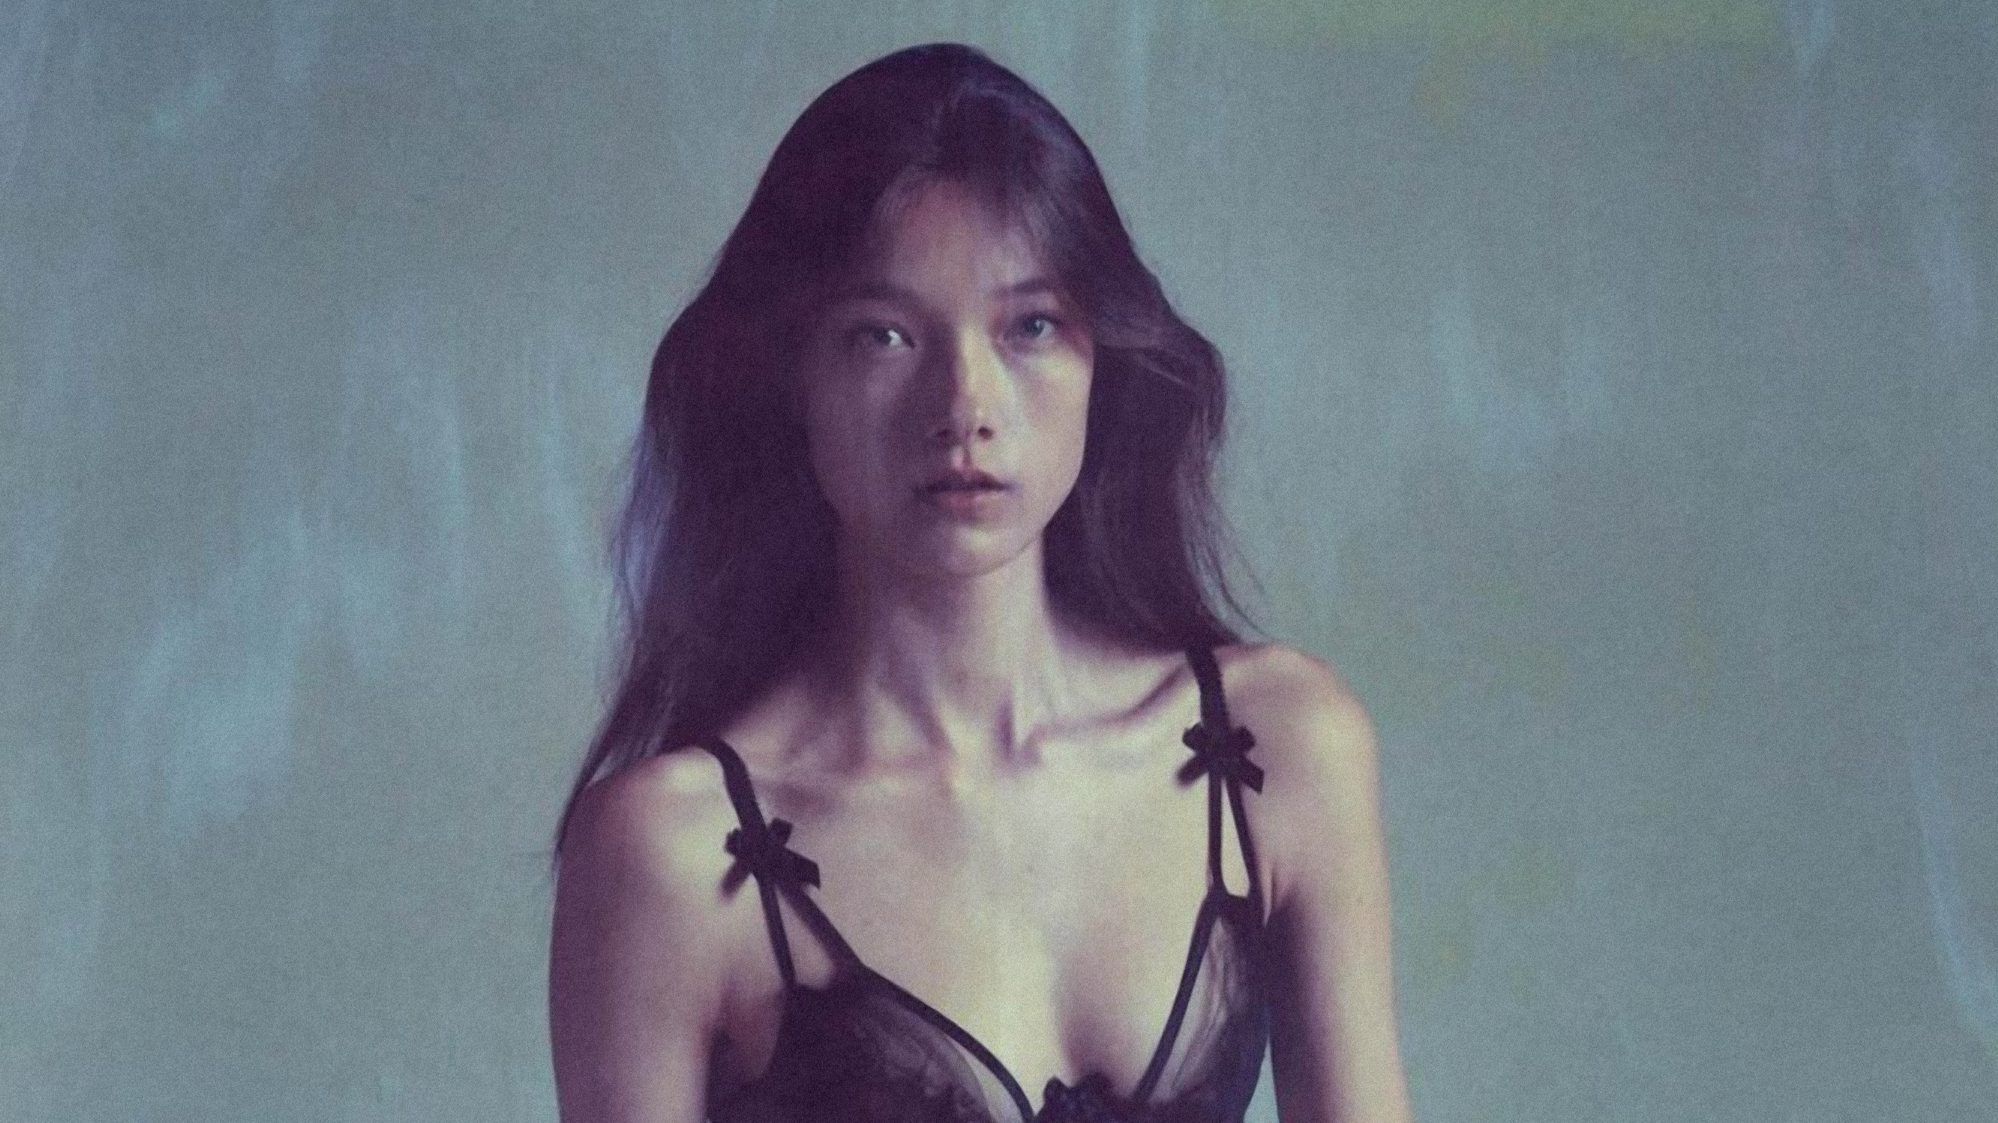 Yumi Lambert photographed by Vanina Sorrenti for 10 Magazine, Summer 2017